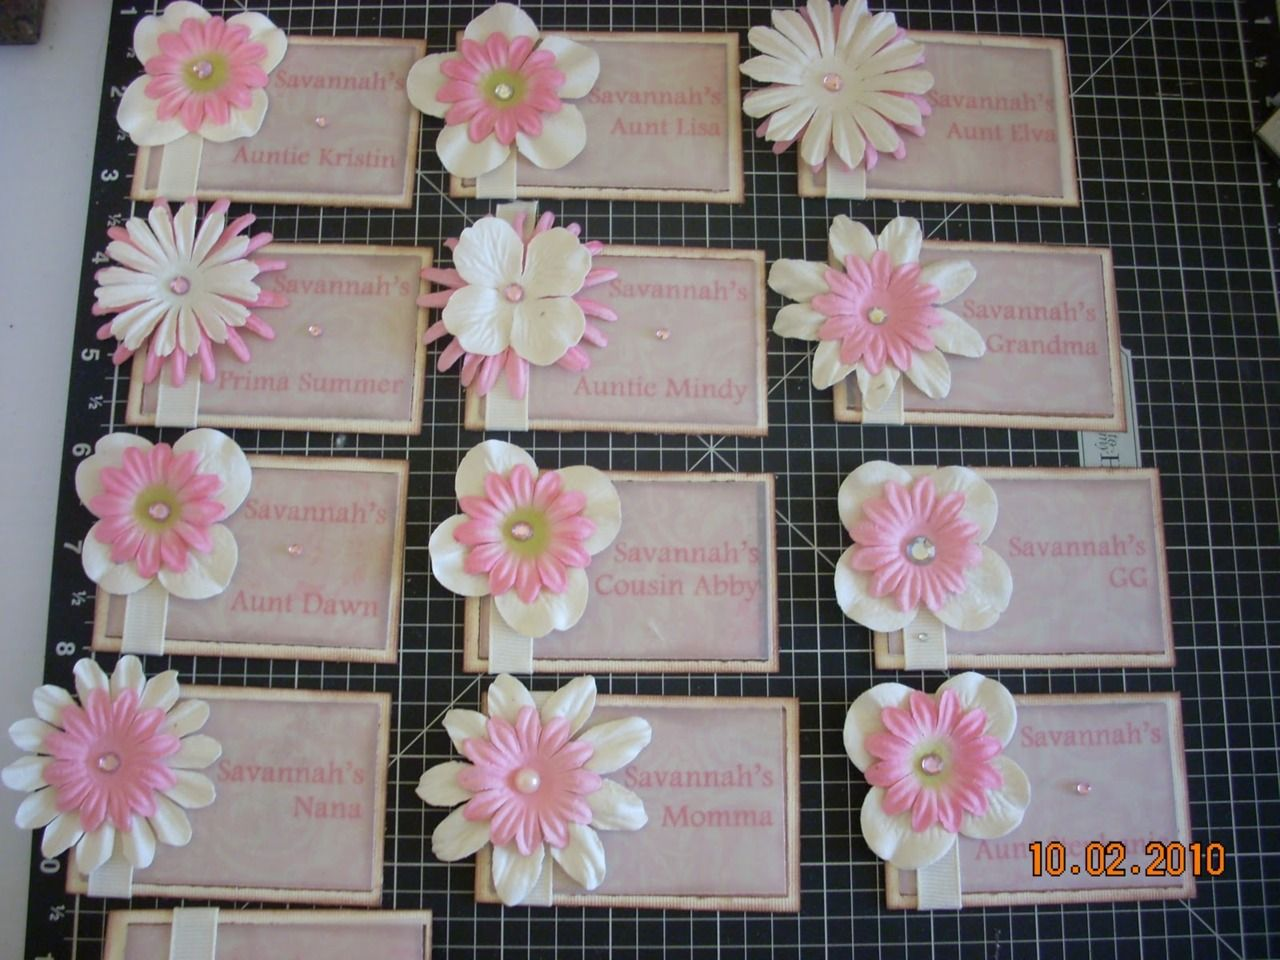 Pnm name tag ideas scrapbooking paper flowers are good materials to work with tags